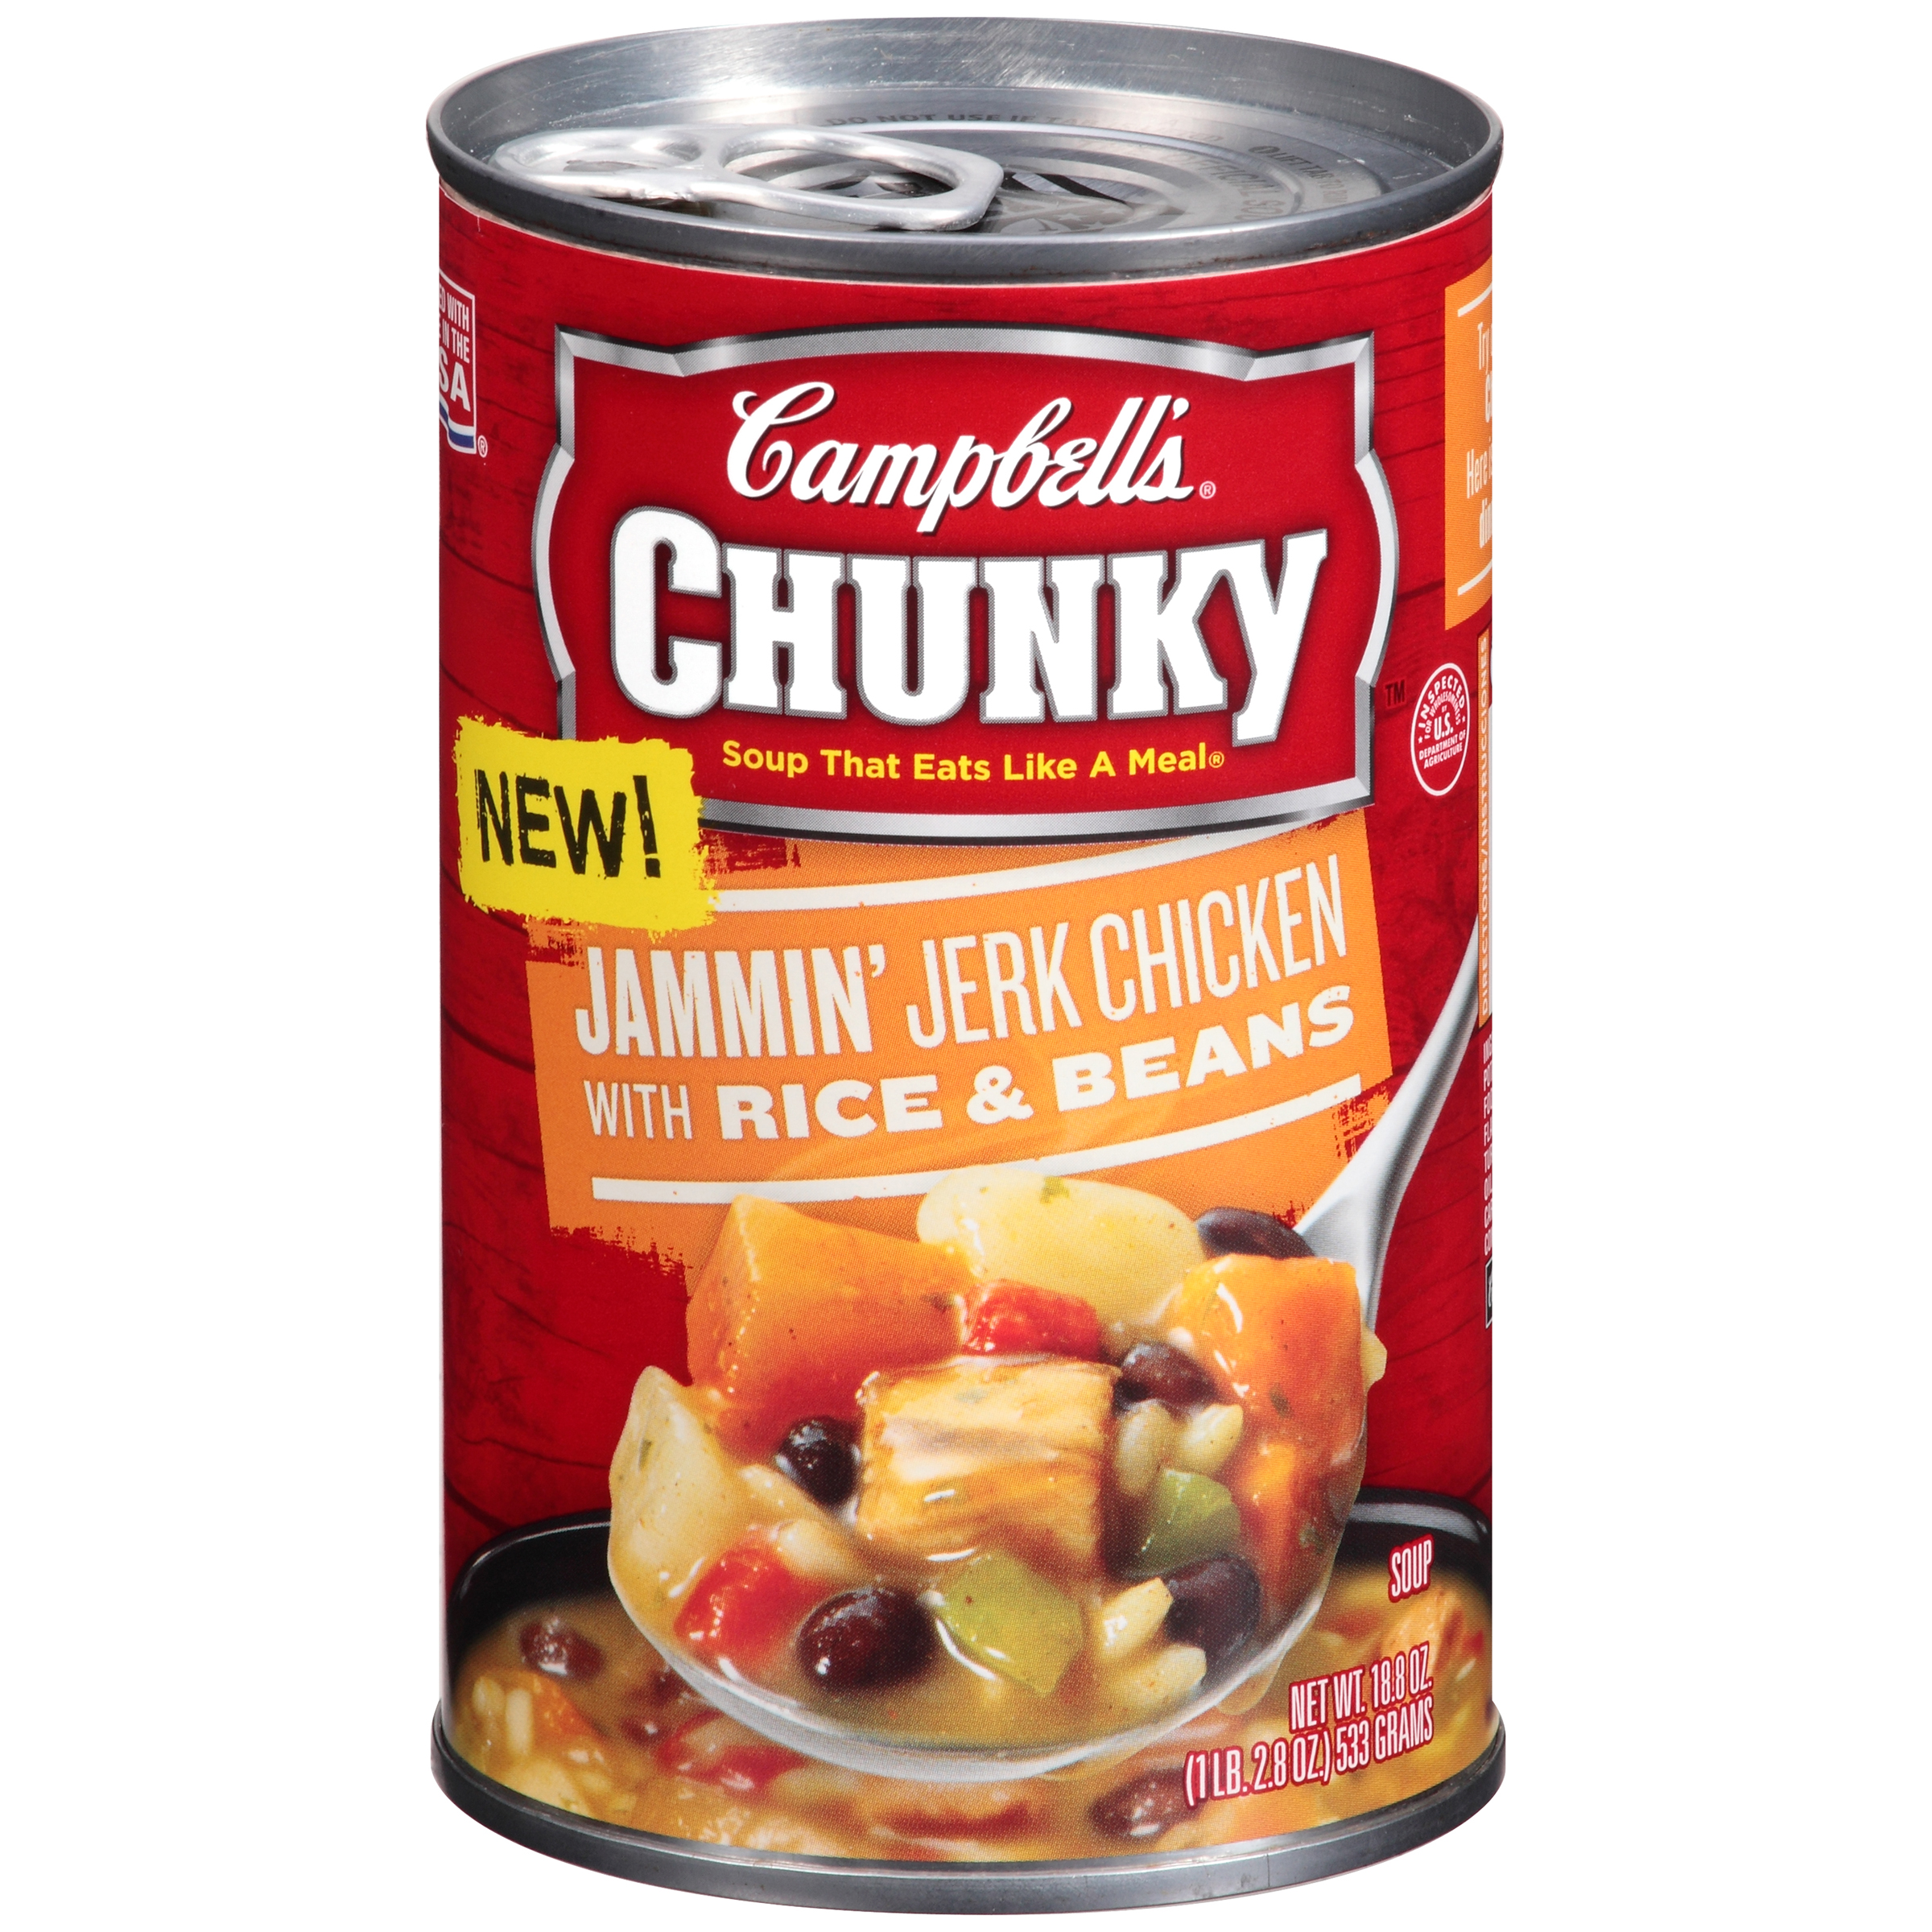 Campbell's Chunky Jammin' Jerk Chicken with Rice & Beans Soup 18.8oz